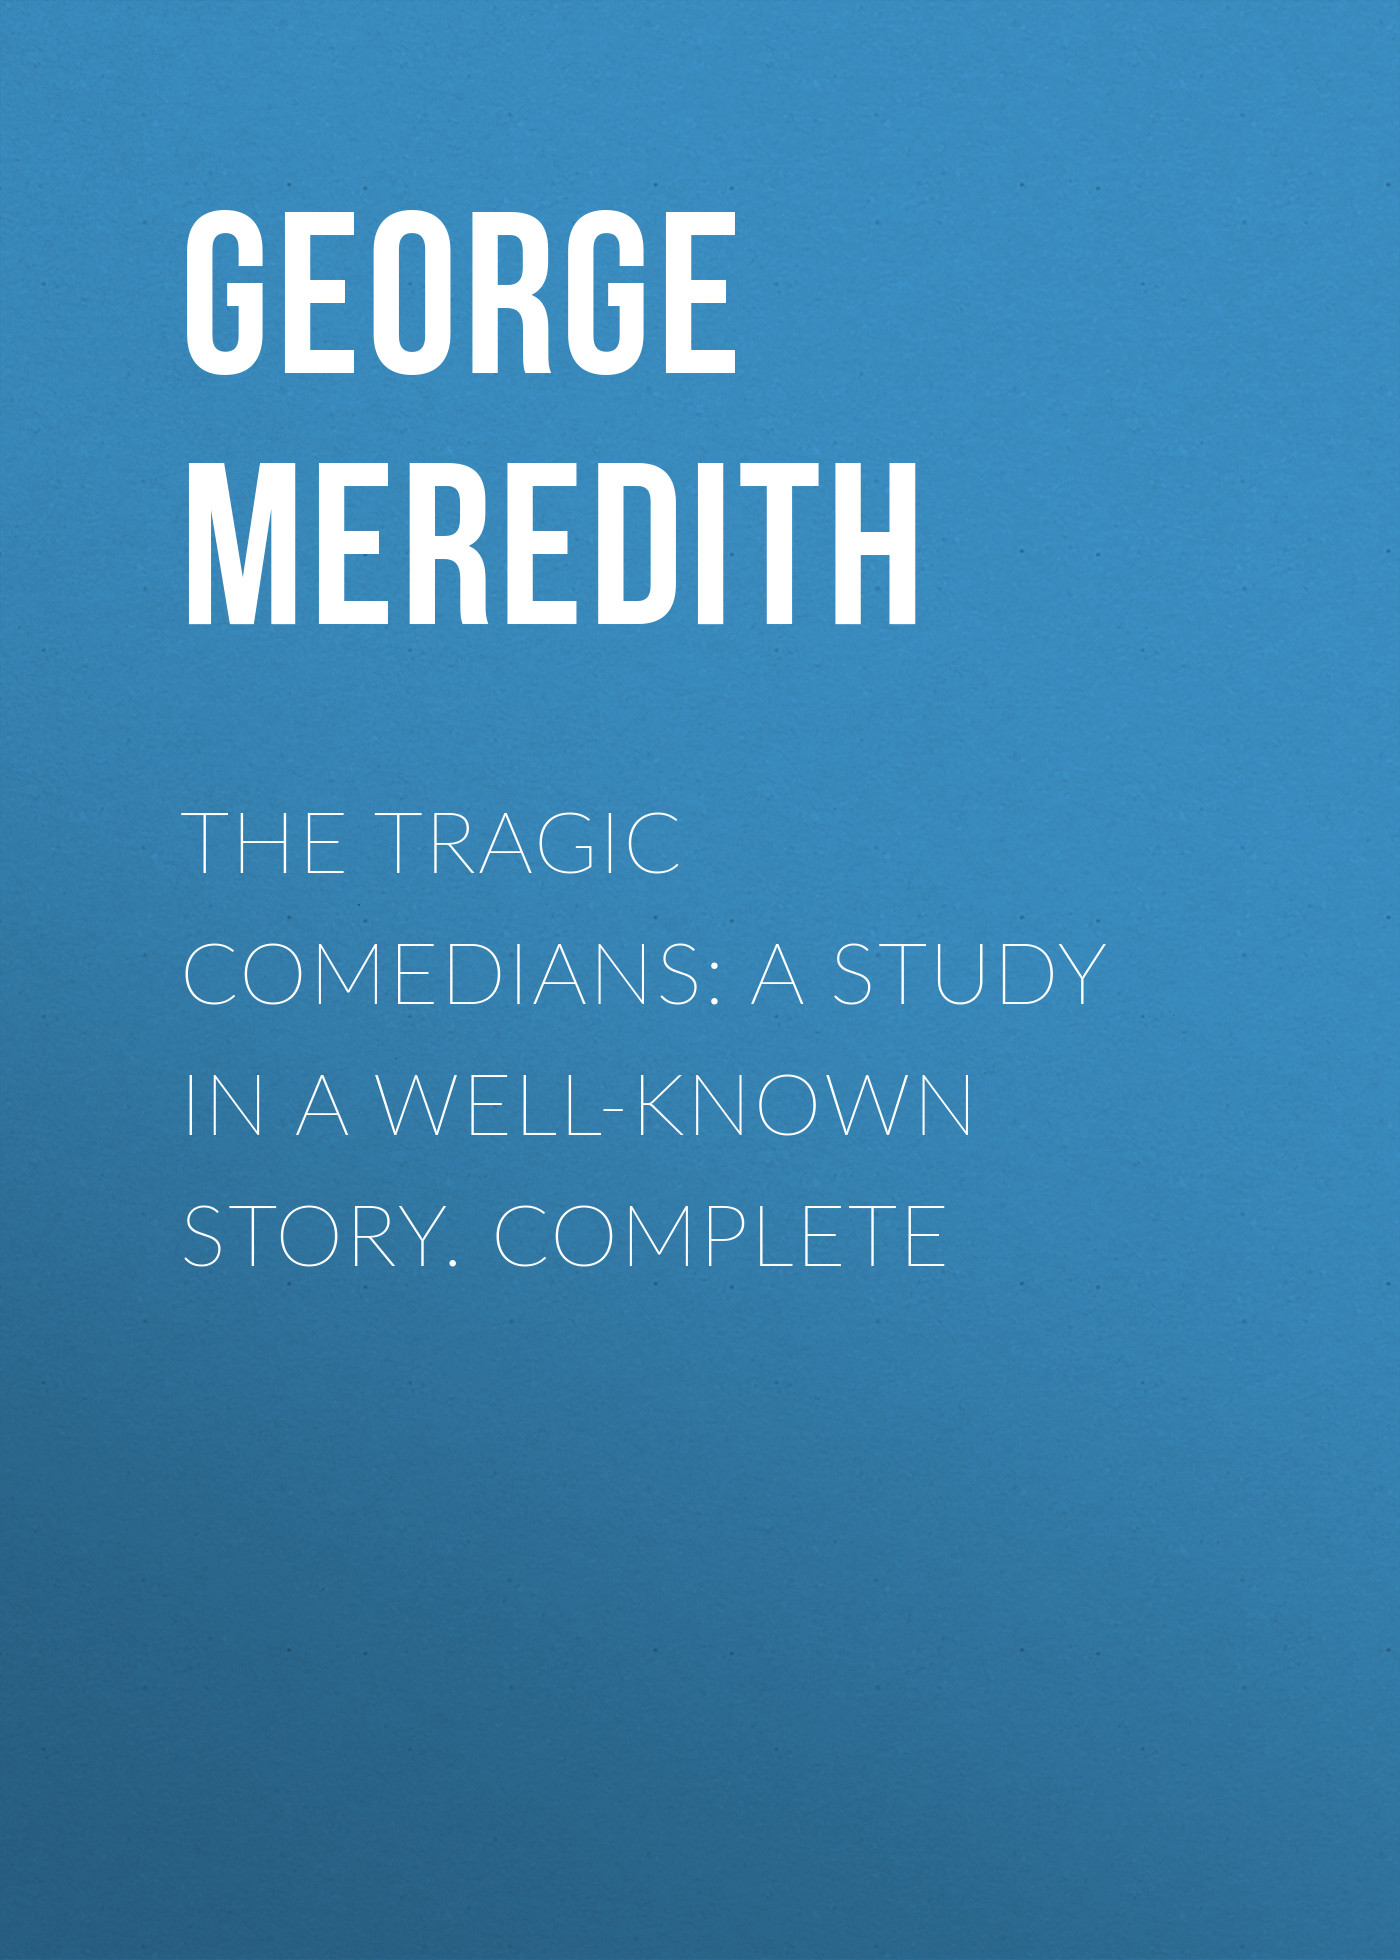 George Meredith The Tragic Comedians: A Study in a Well-known Story. Complete metallica the complete story 2 dvd